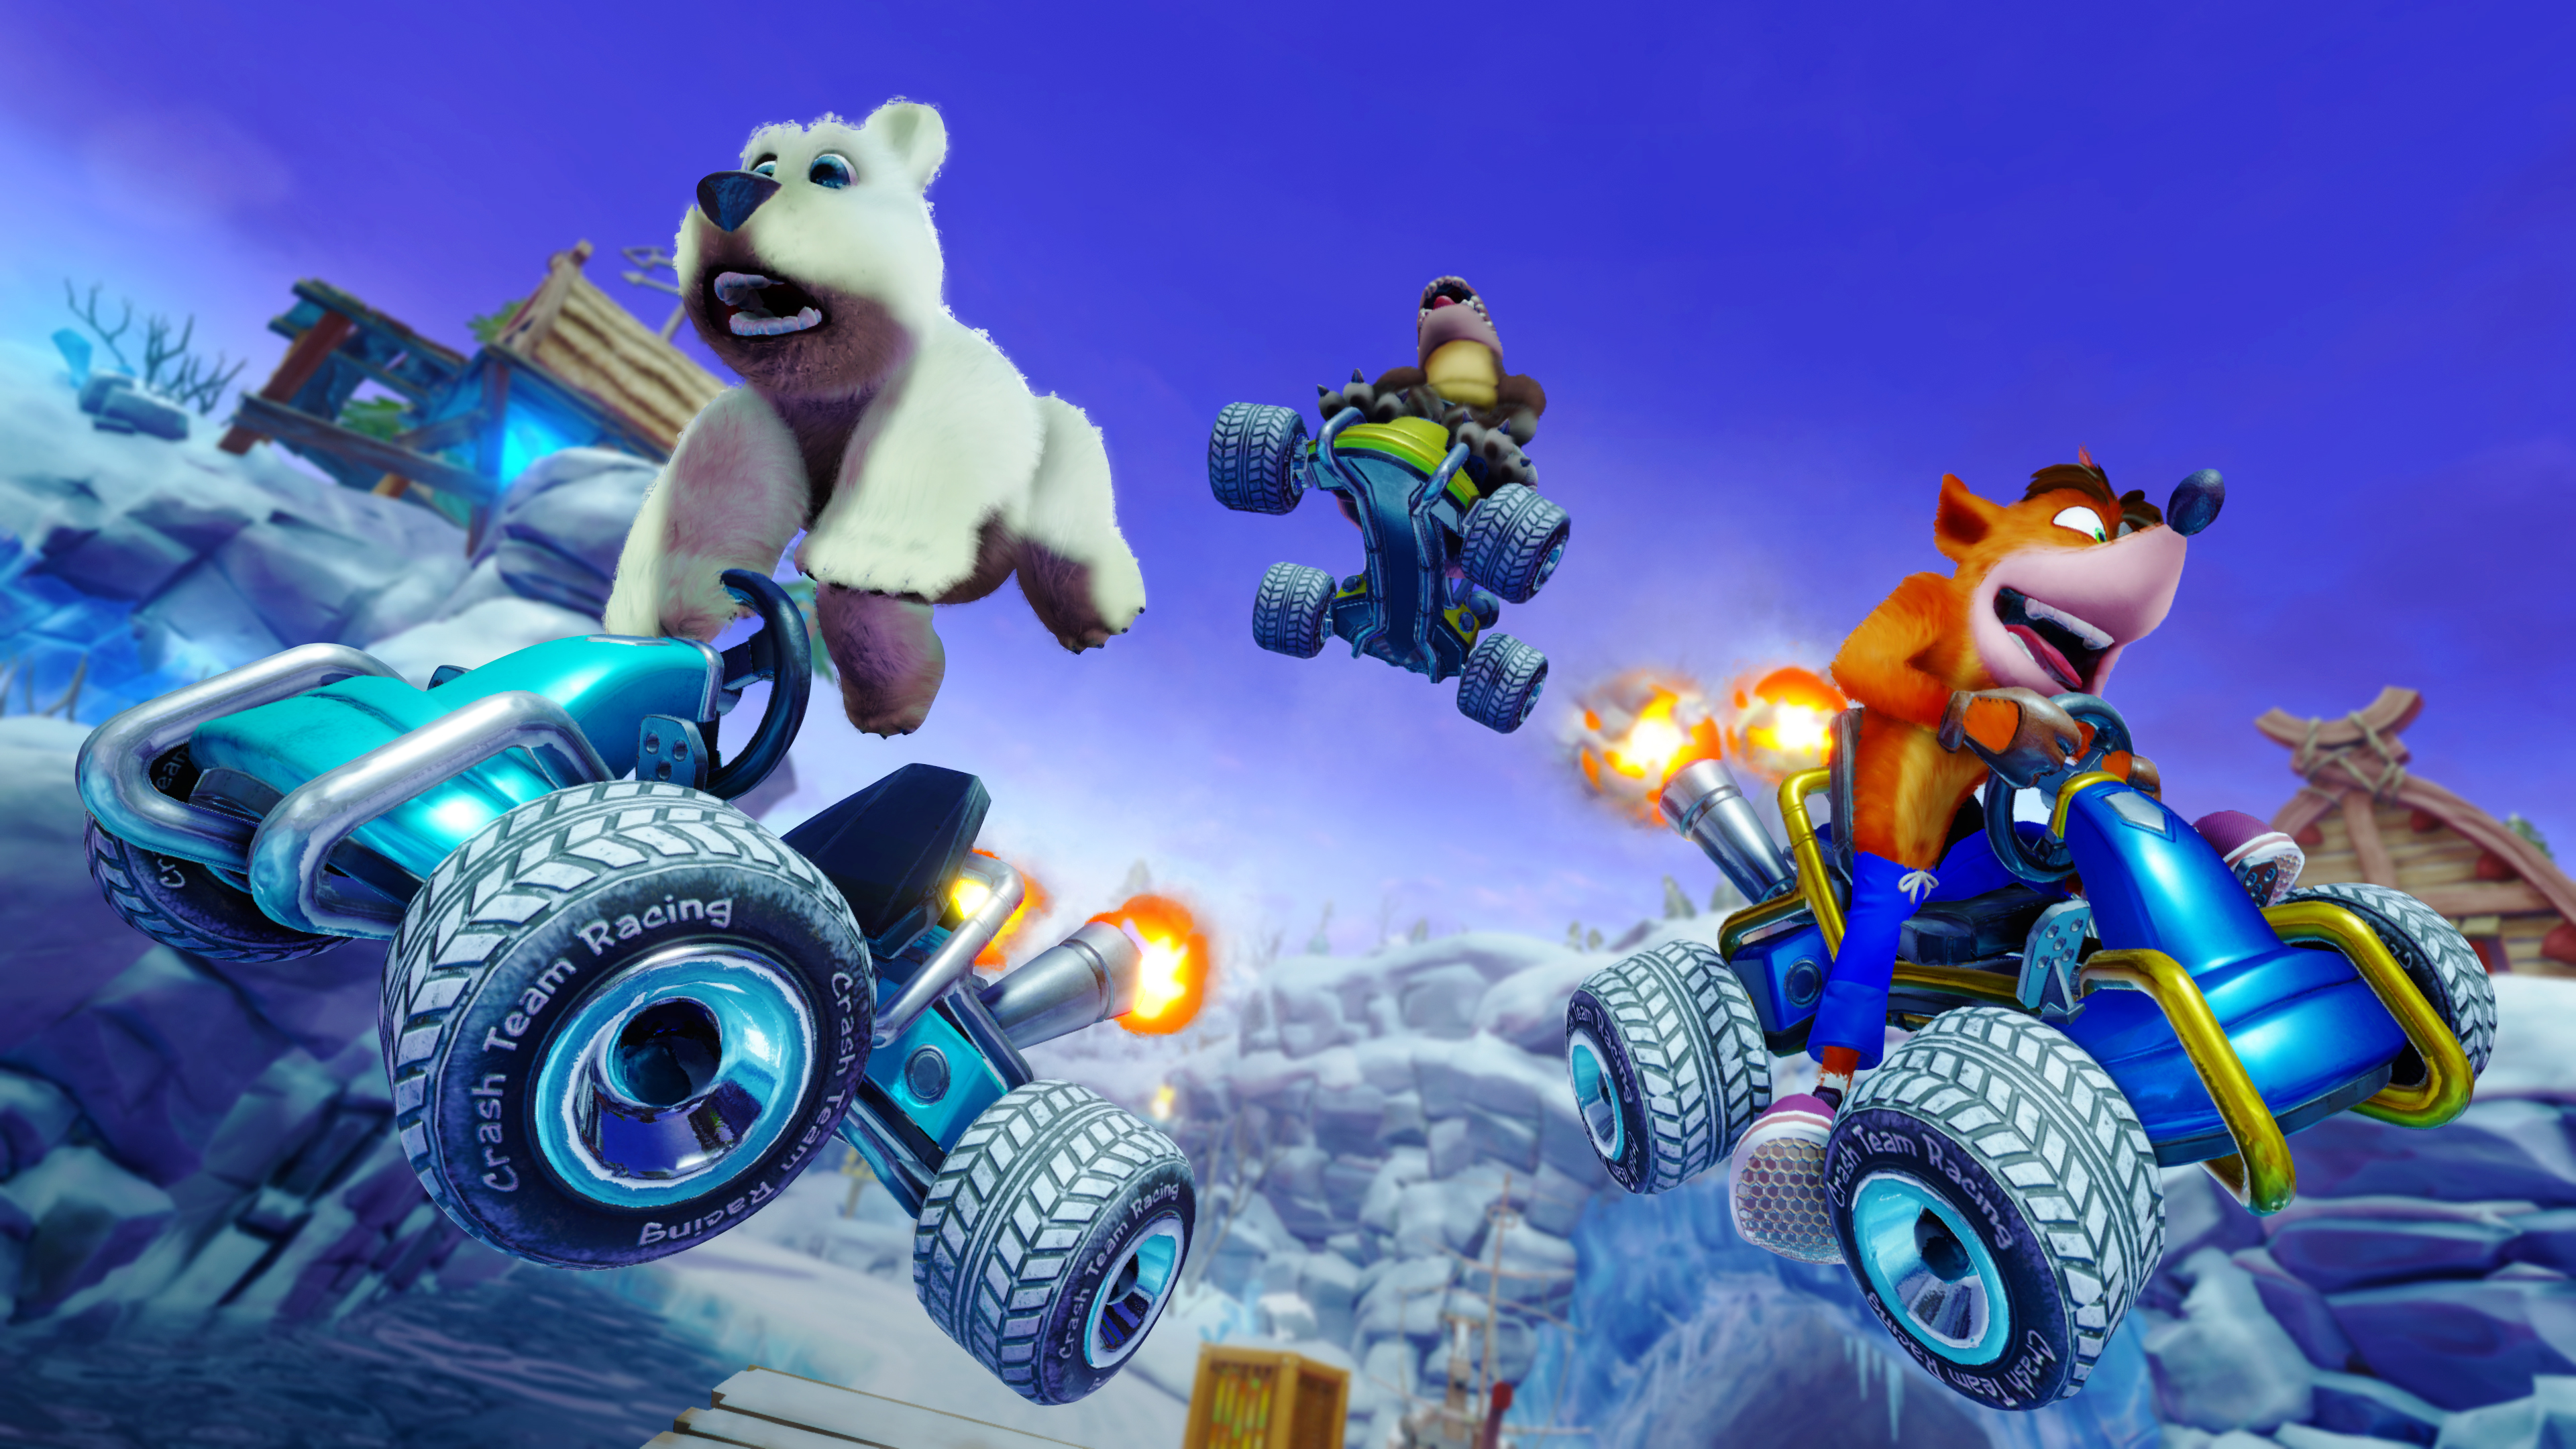 Crash Team Racing tips: 11 hints at how to be the best at